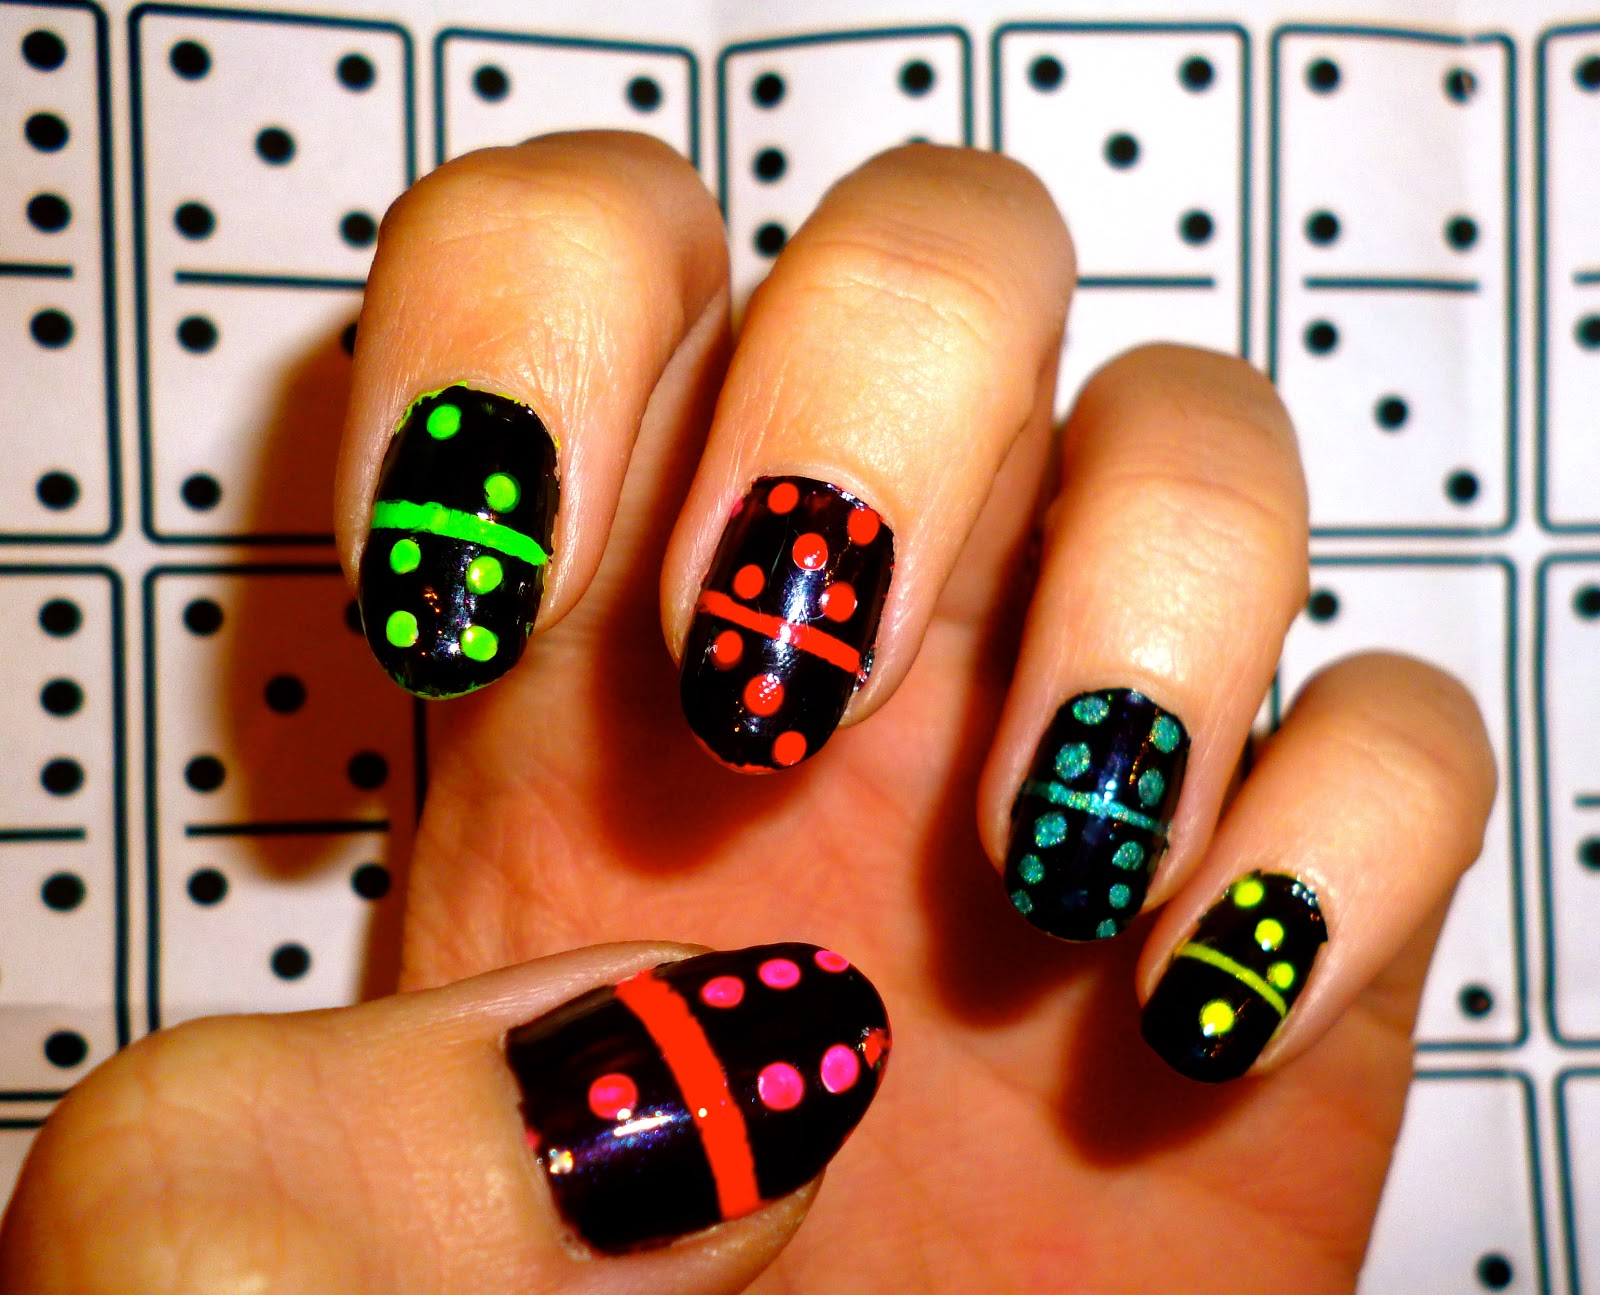 We Paired Up Our Domino Nails At The Neon Party Which Went Down Rather Well And Got Slightly Covered In Paint